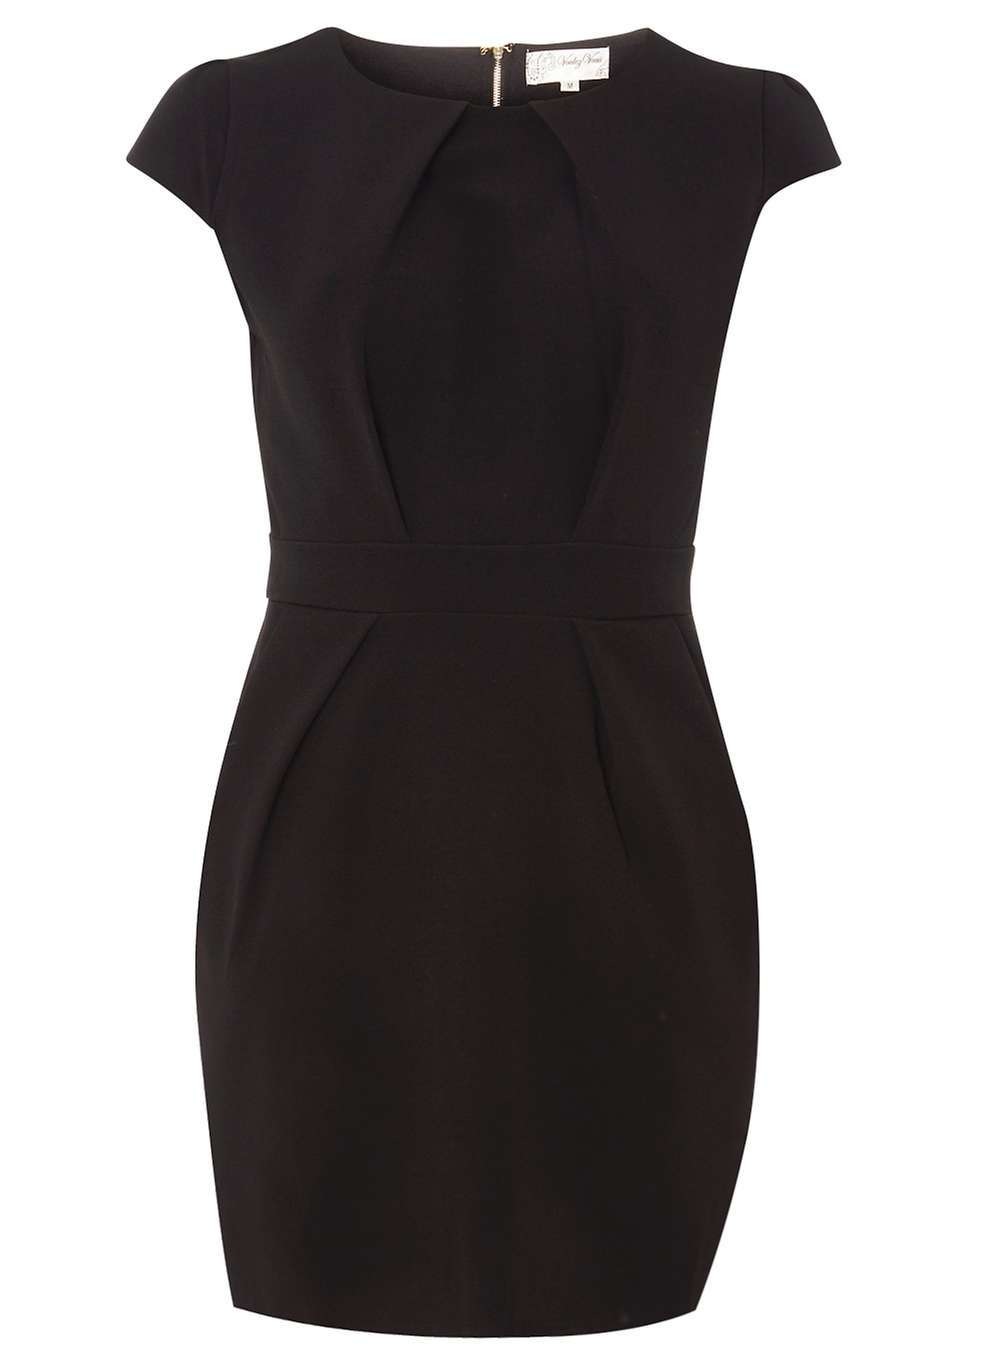 Womens **Voulez Vous Black Back Tie Pleat Dress Black - style: shift; length: mini; sleeve style: capped; fit: tailored/fitted; pattern: plain; predominant colour: black; occasions: evening; fibres: polyester/polyamide - 100%; neckline: crew; sleeve length: short sleeve; pattern type: fabric; texture group: other - light to midweight; season: a/w 2016; wardrobe: event